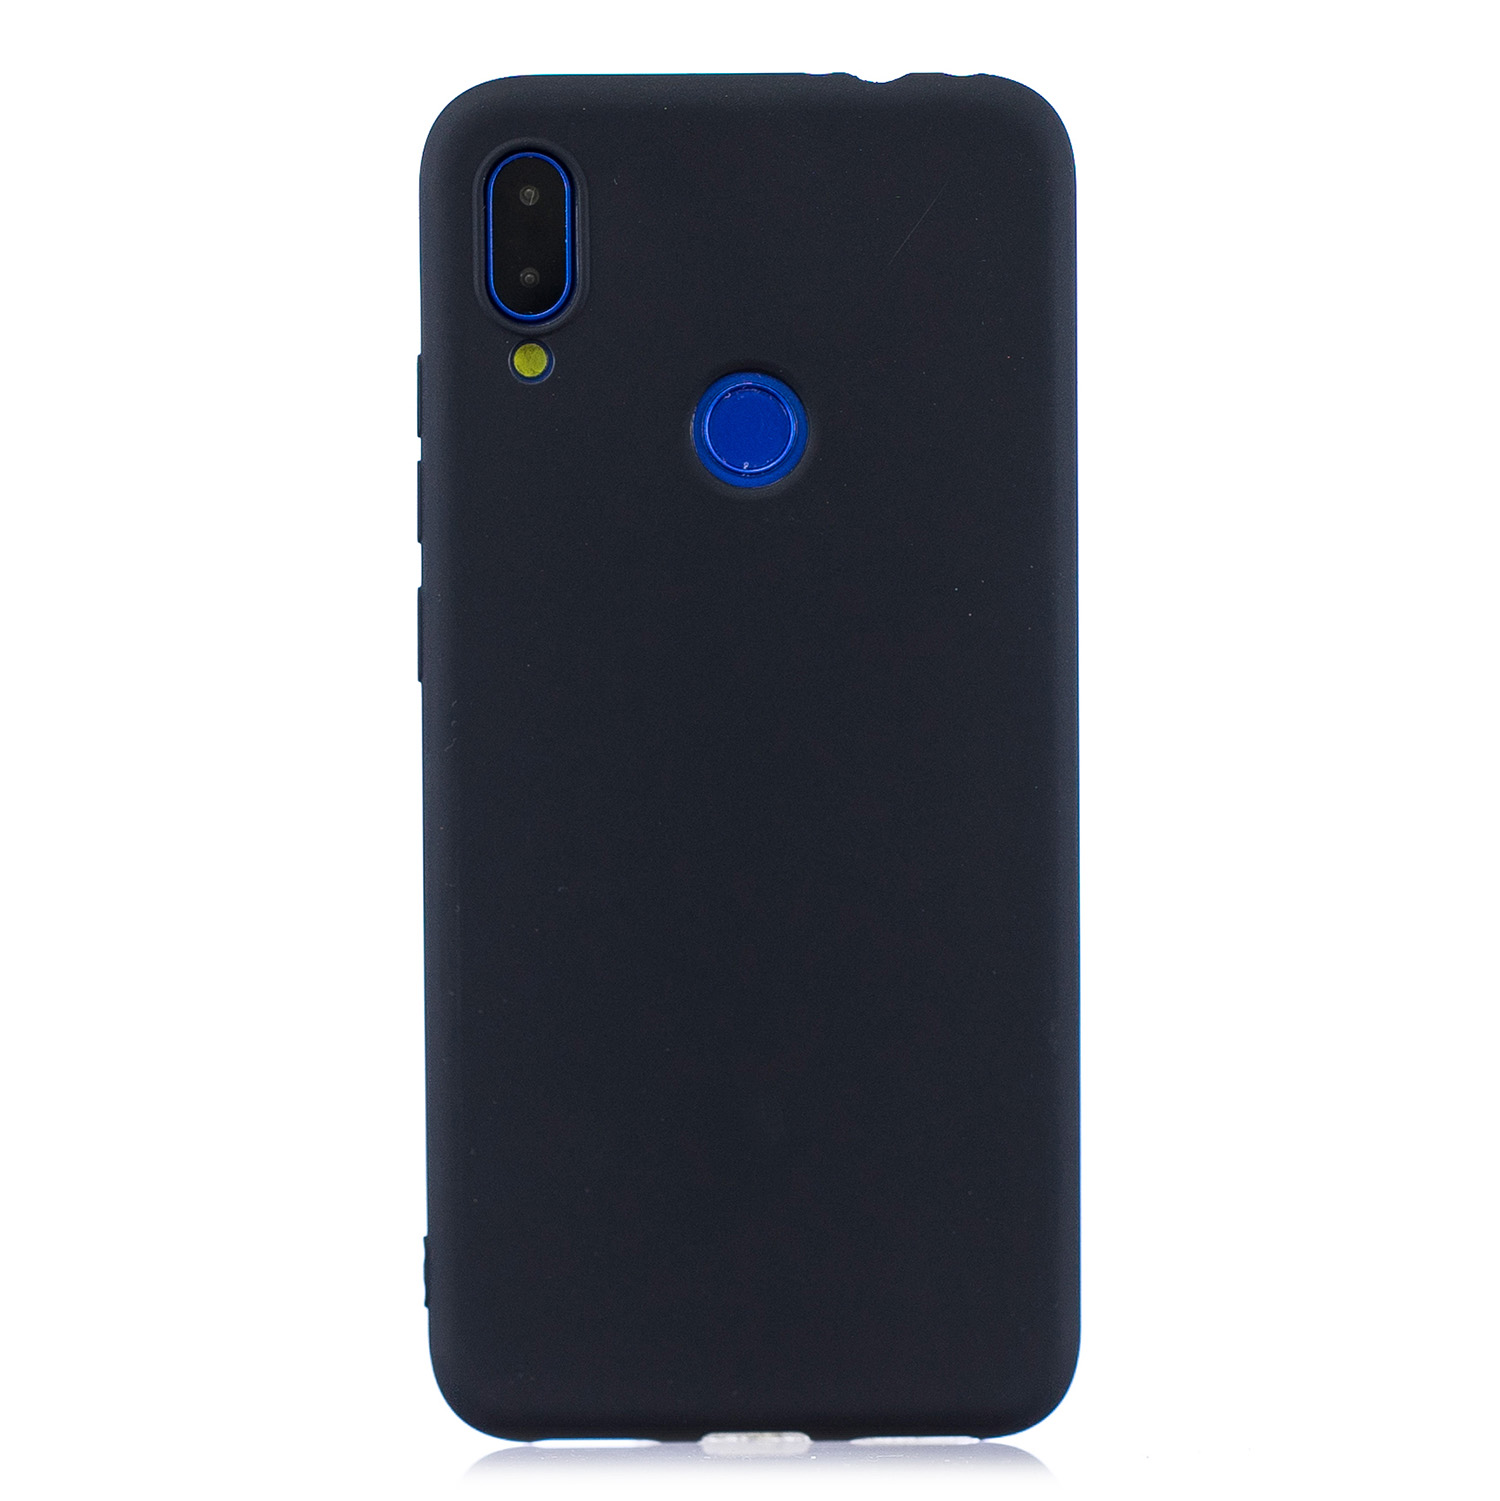 For Redmi note 7 Lovely Candy Color Matte TPU Anti-scratch Non-slip Protective Cover Back Case black